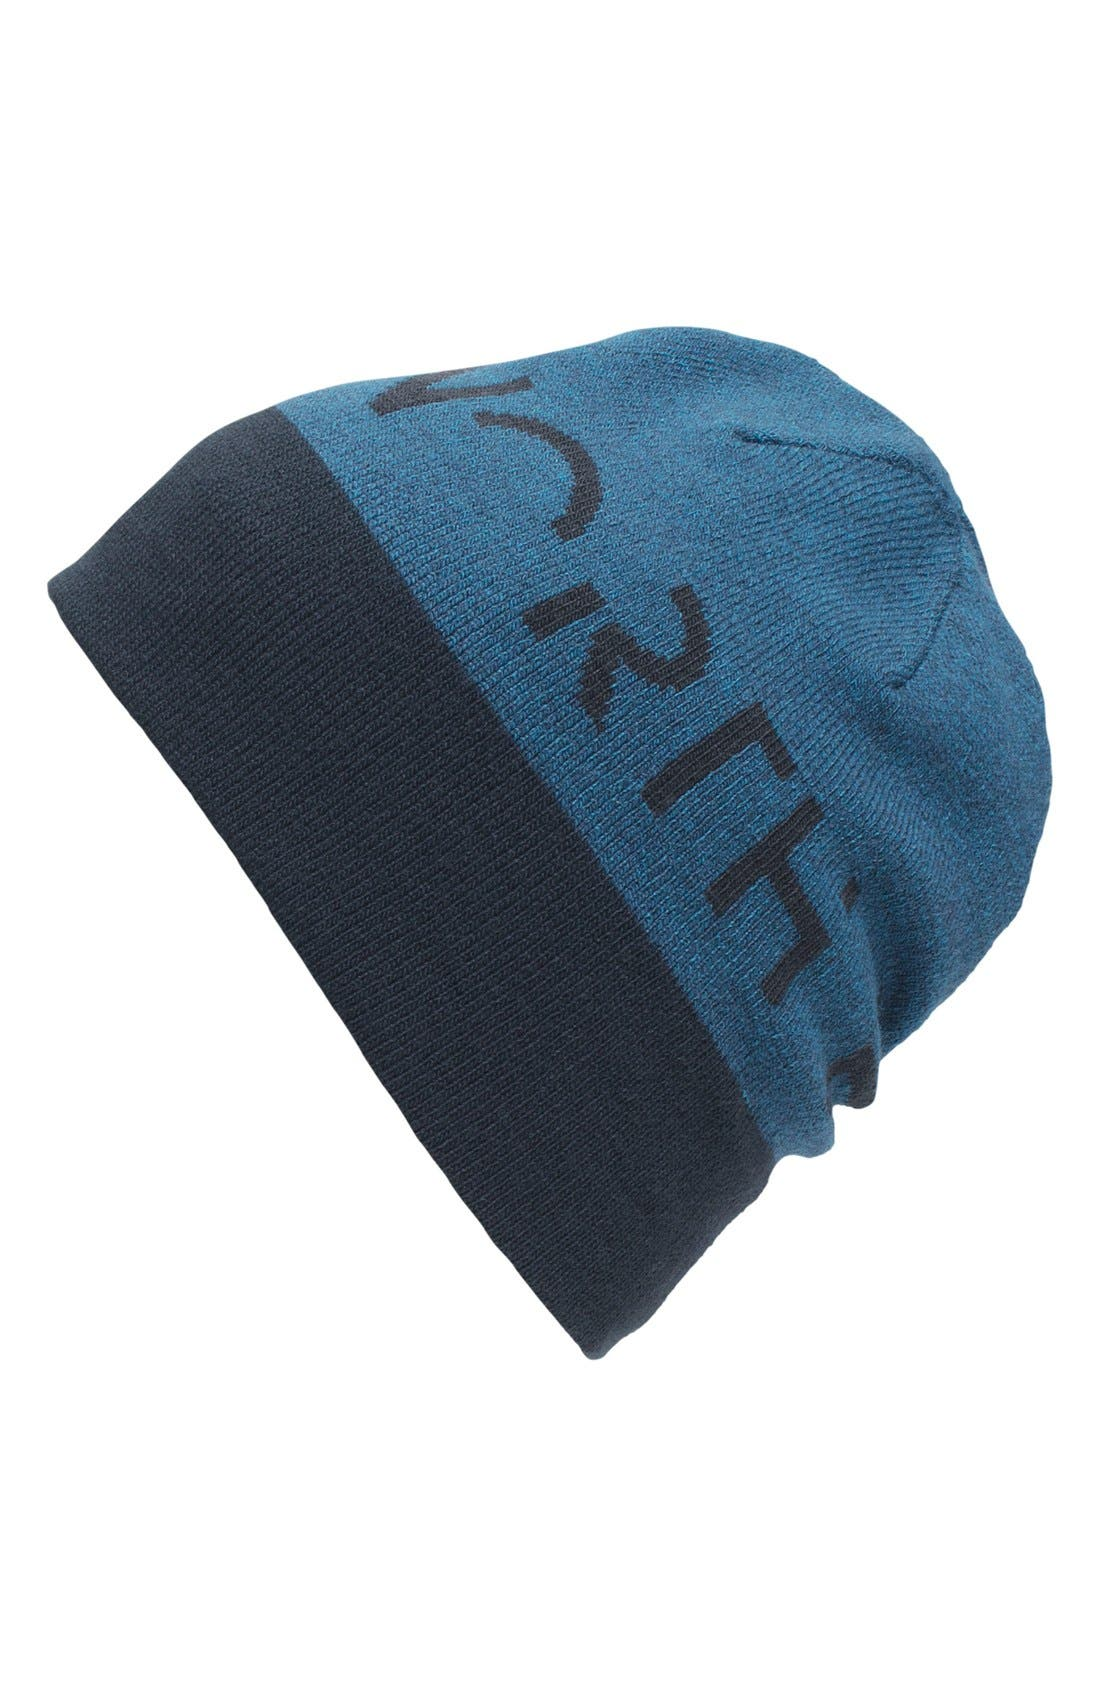 Main Image - The North Face Reversible Beanie